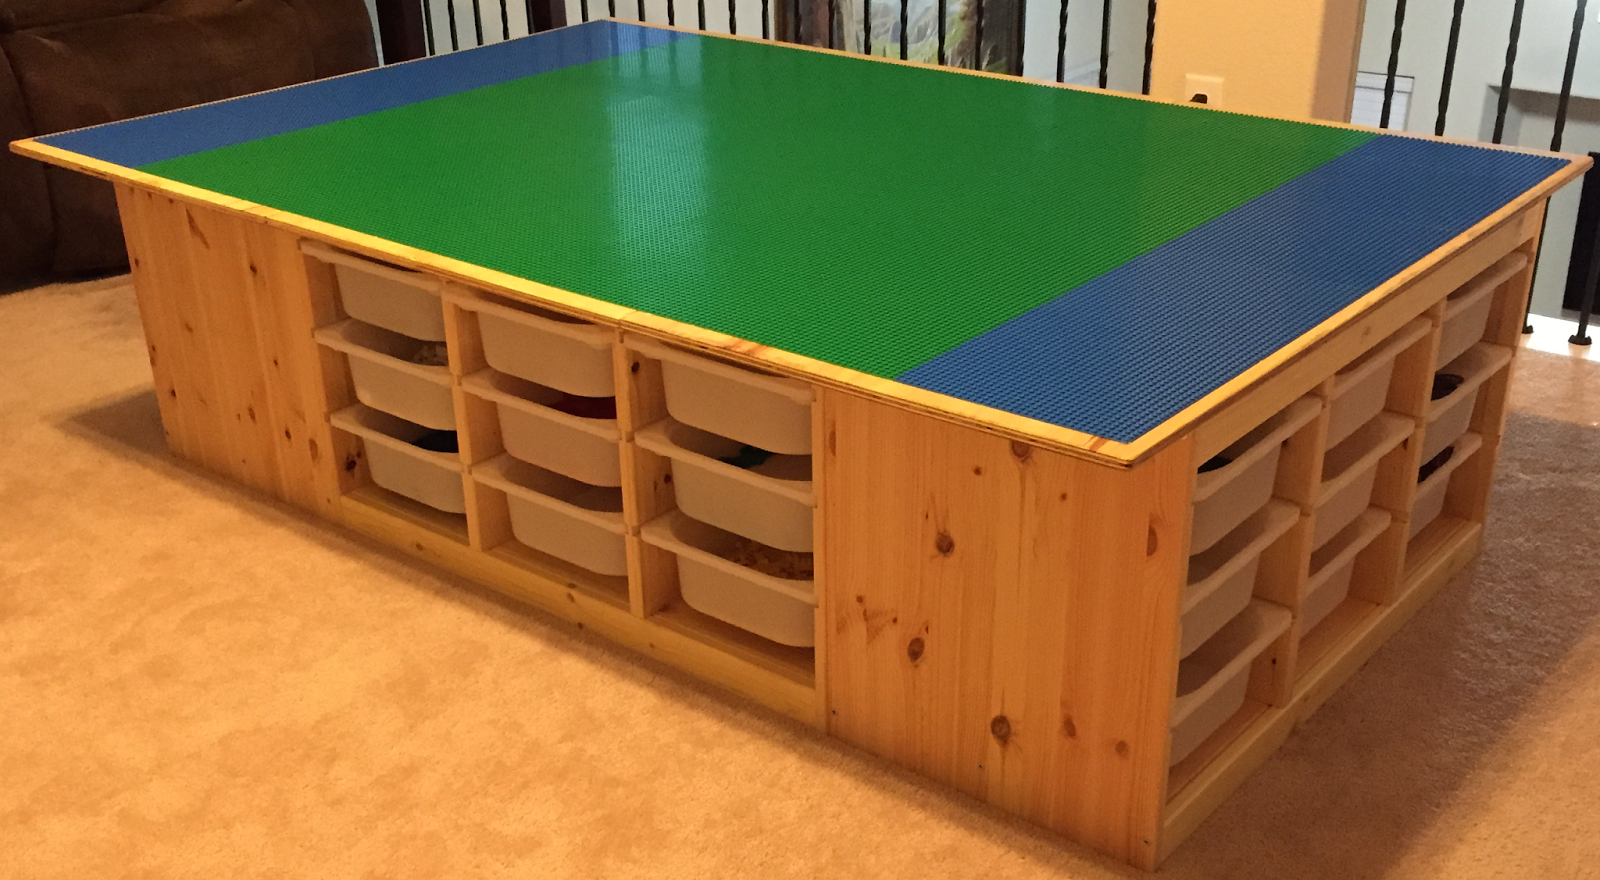 The Lego Table Goes Awesome Uses 4 Ikea S Trofast Frames 4 Feet X 6 Feet Table Top Legos Are